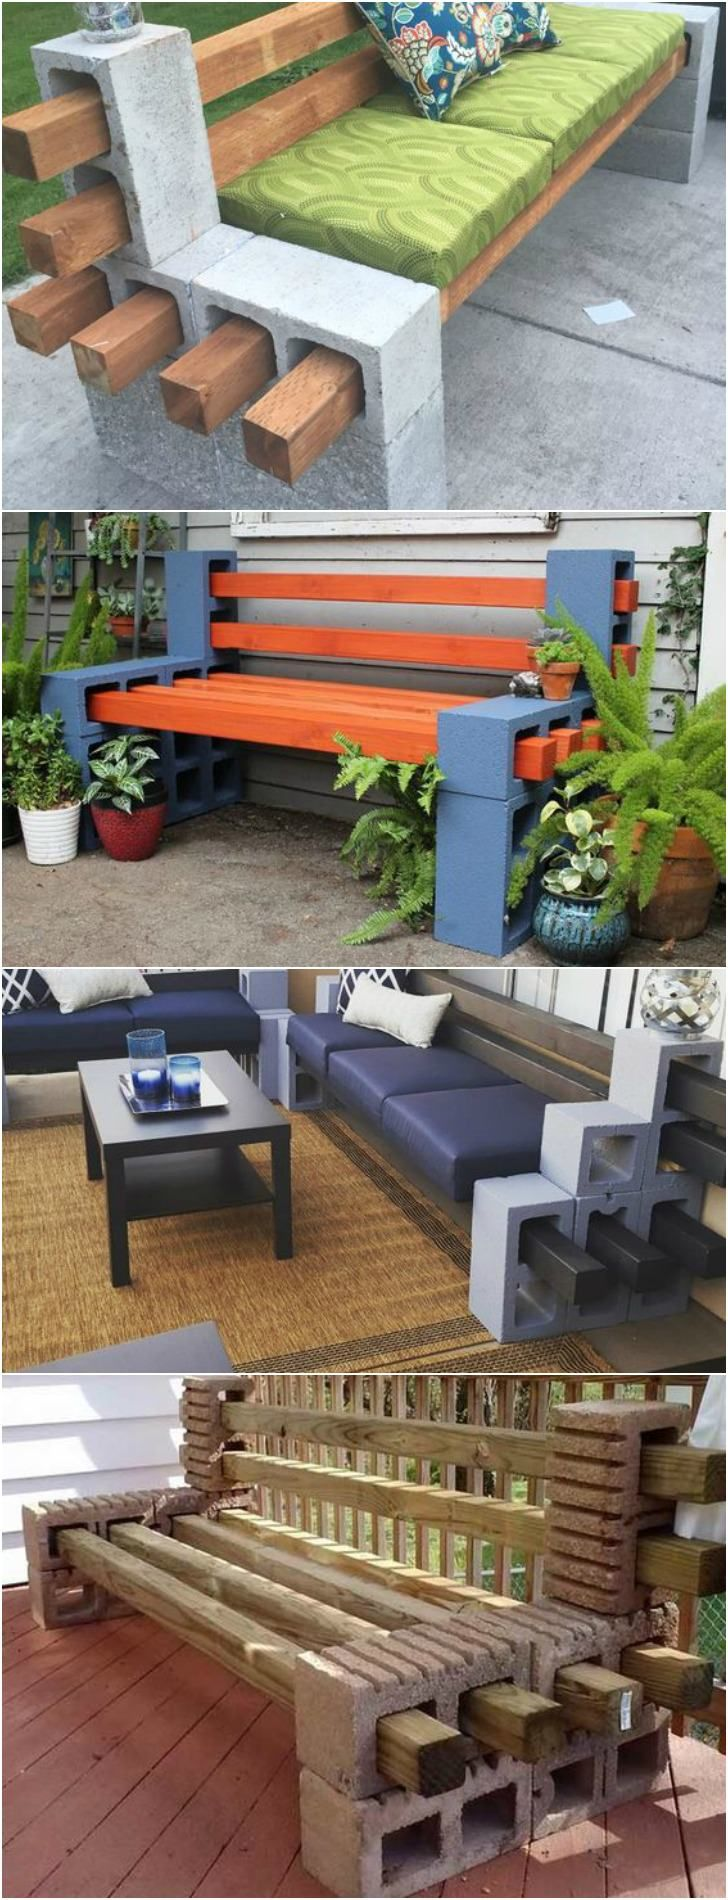 25+ best diy outdoor furniture ideas on pinterest | outdoor ... - Designer Patio Furniture